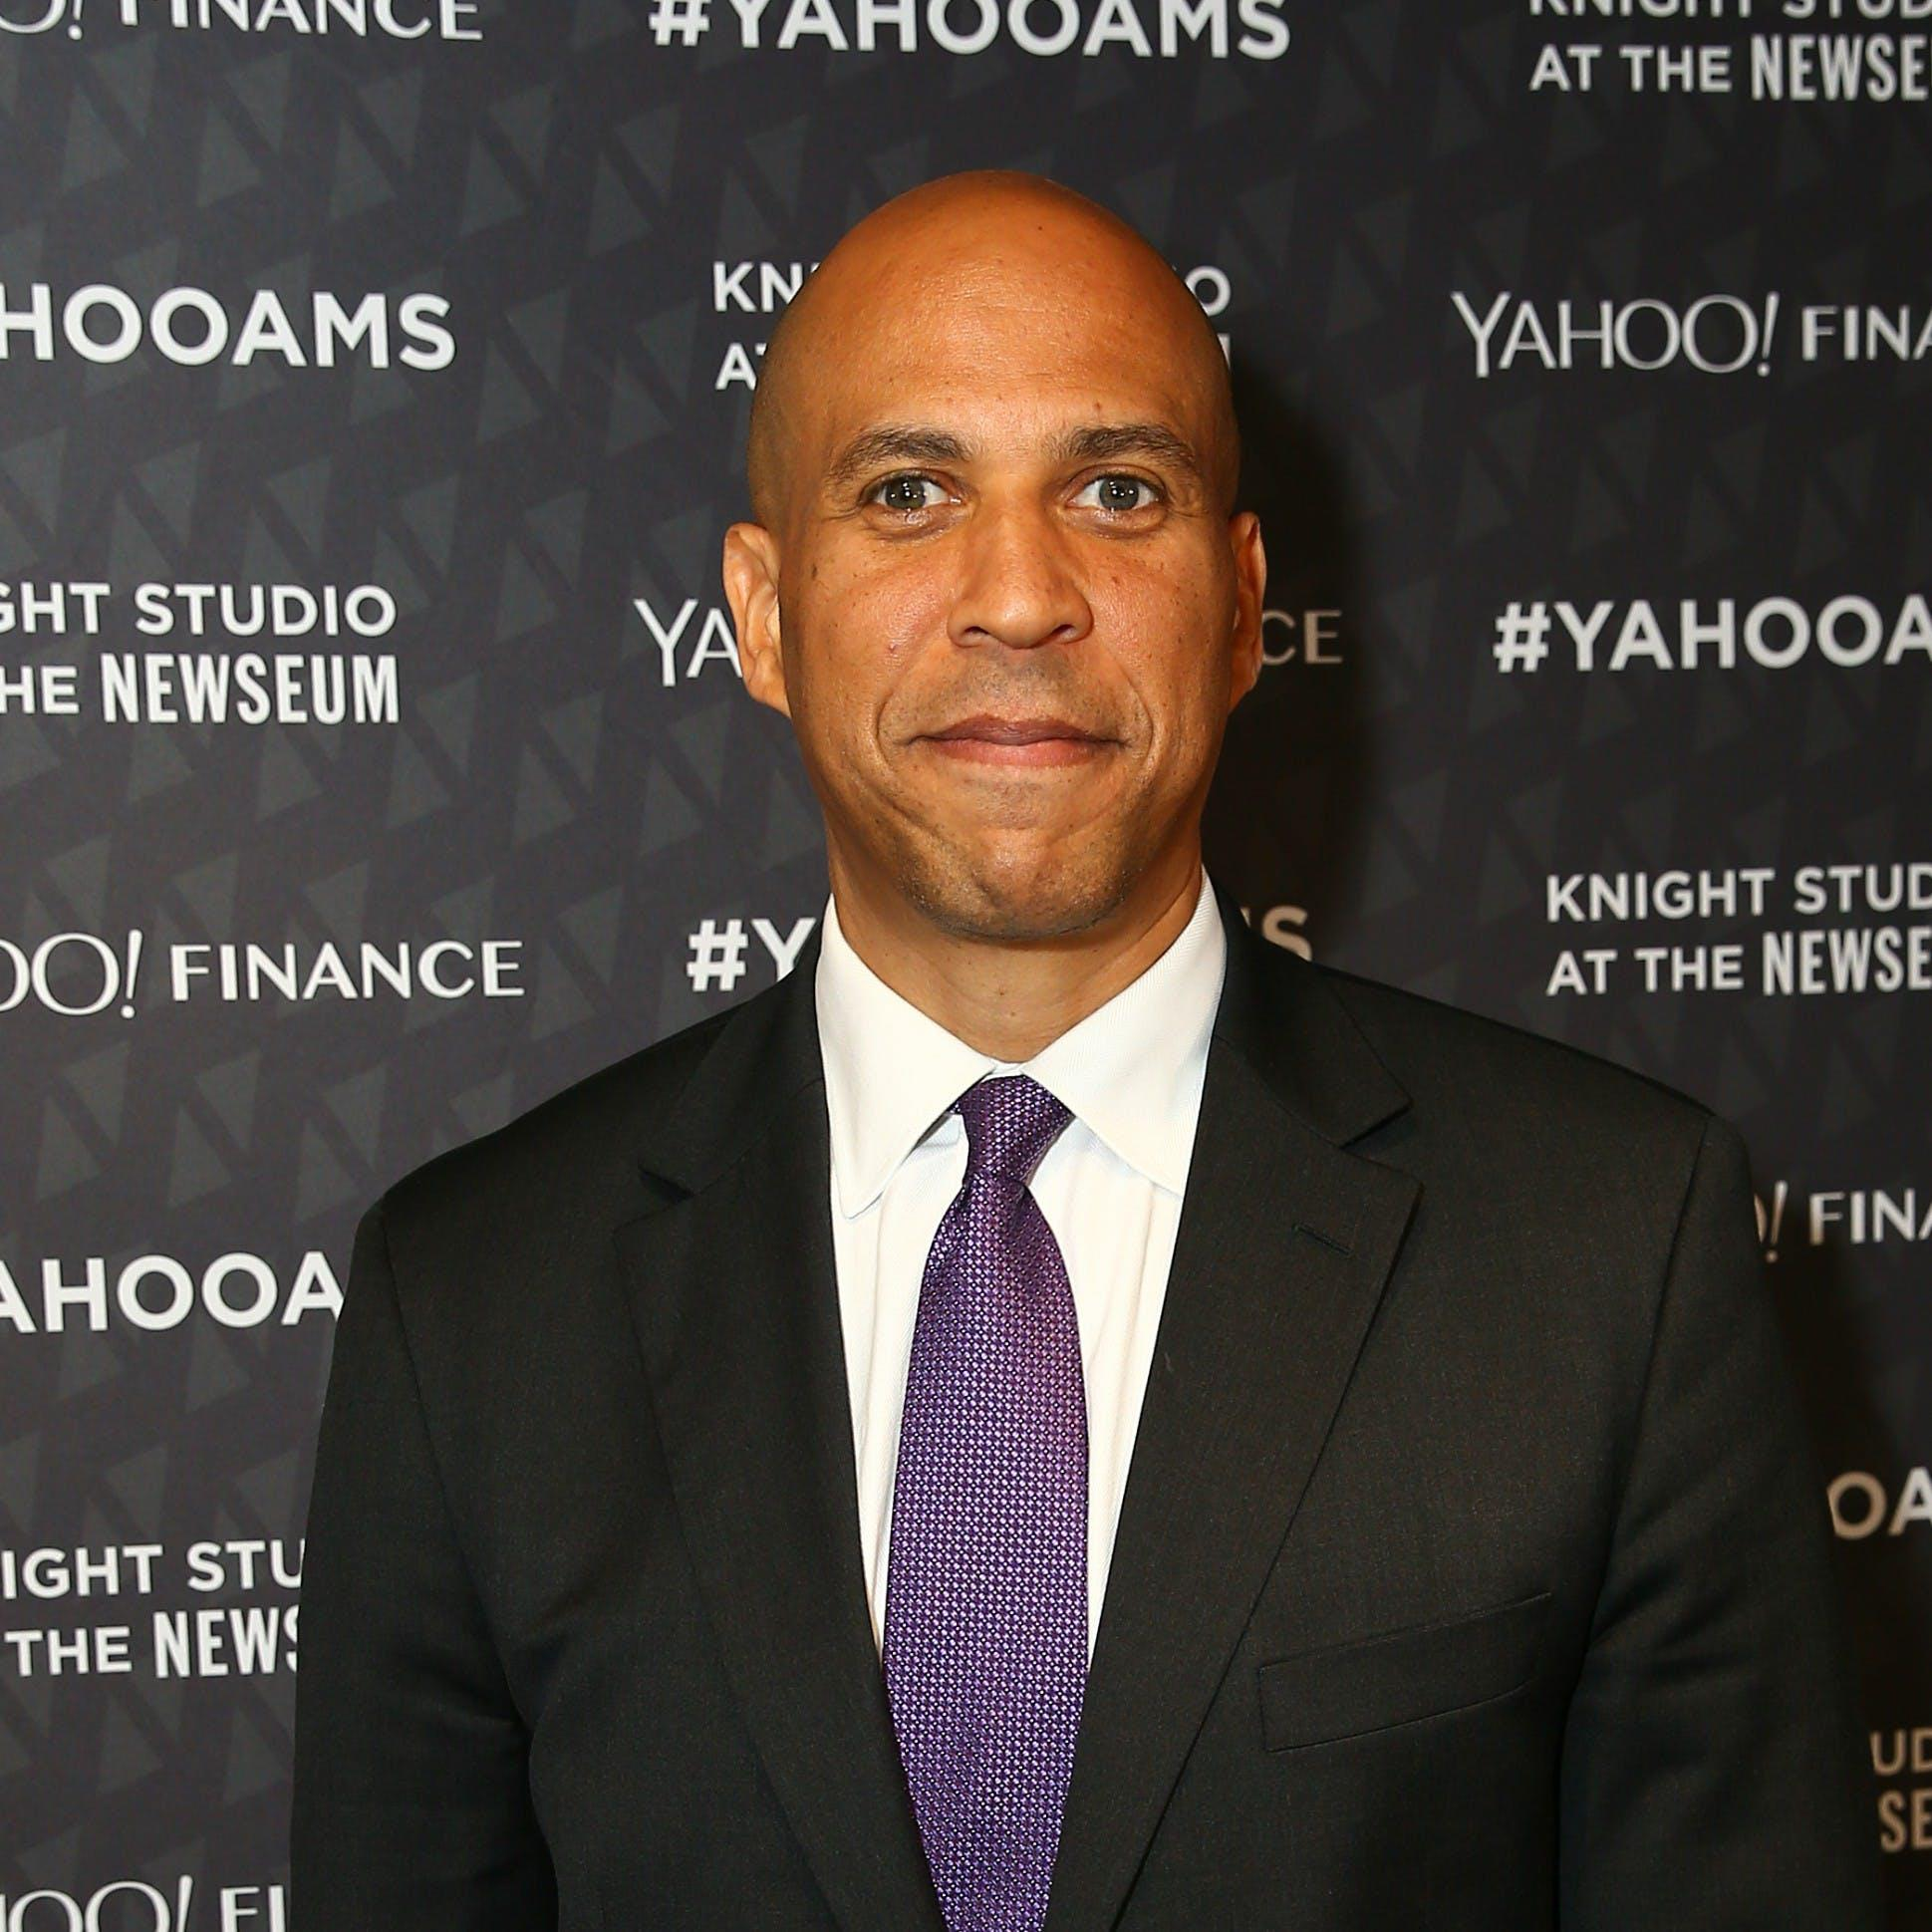 Senator Cory Booker Opens Black History Month With 2020